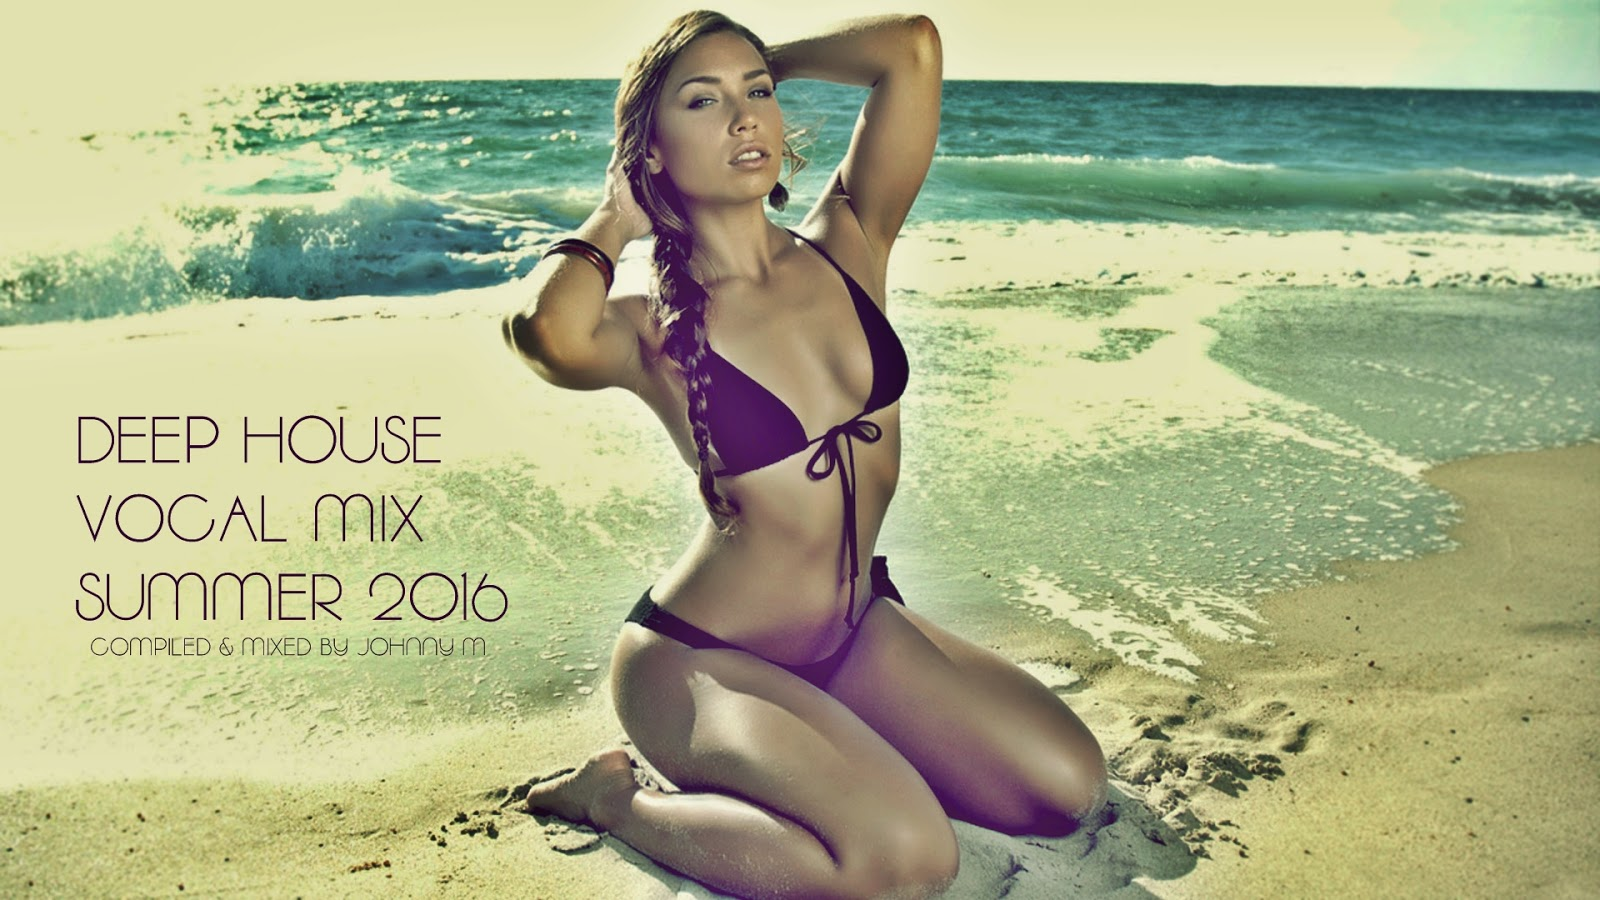 Deep house vocal mix summer 2016 johnny m in the mix for Classic deep house mix